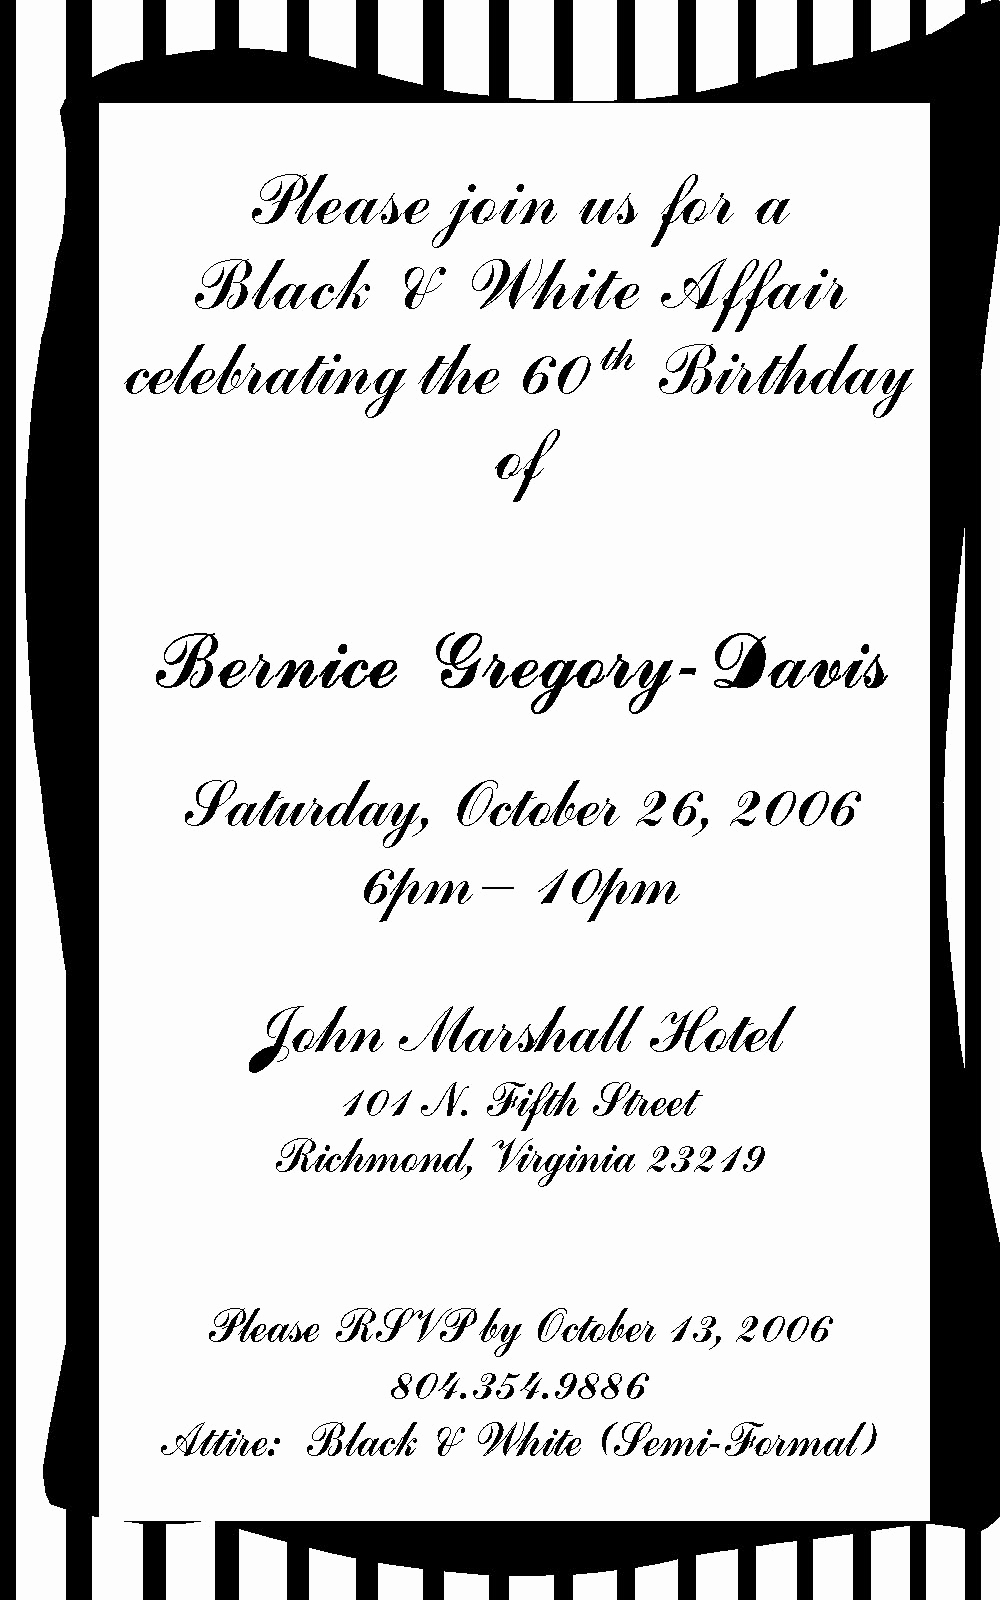 Birthday Invitation Wording for Adults Awesome Birthday Invitation Wording Samples for Adults Cobypic